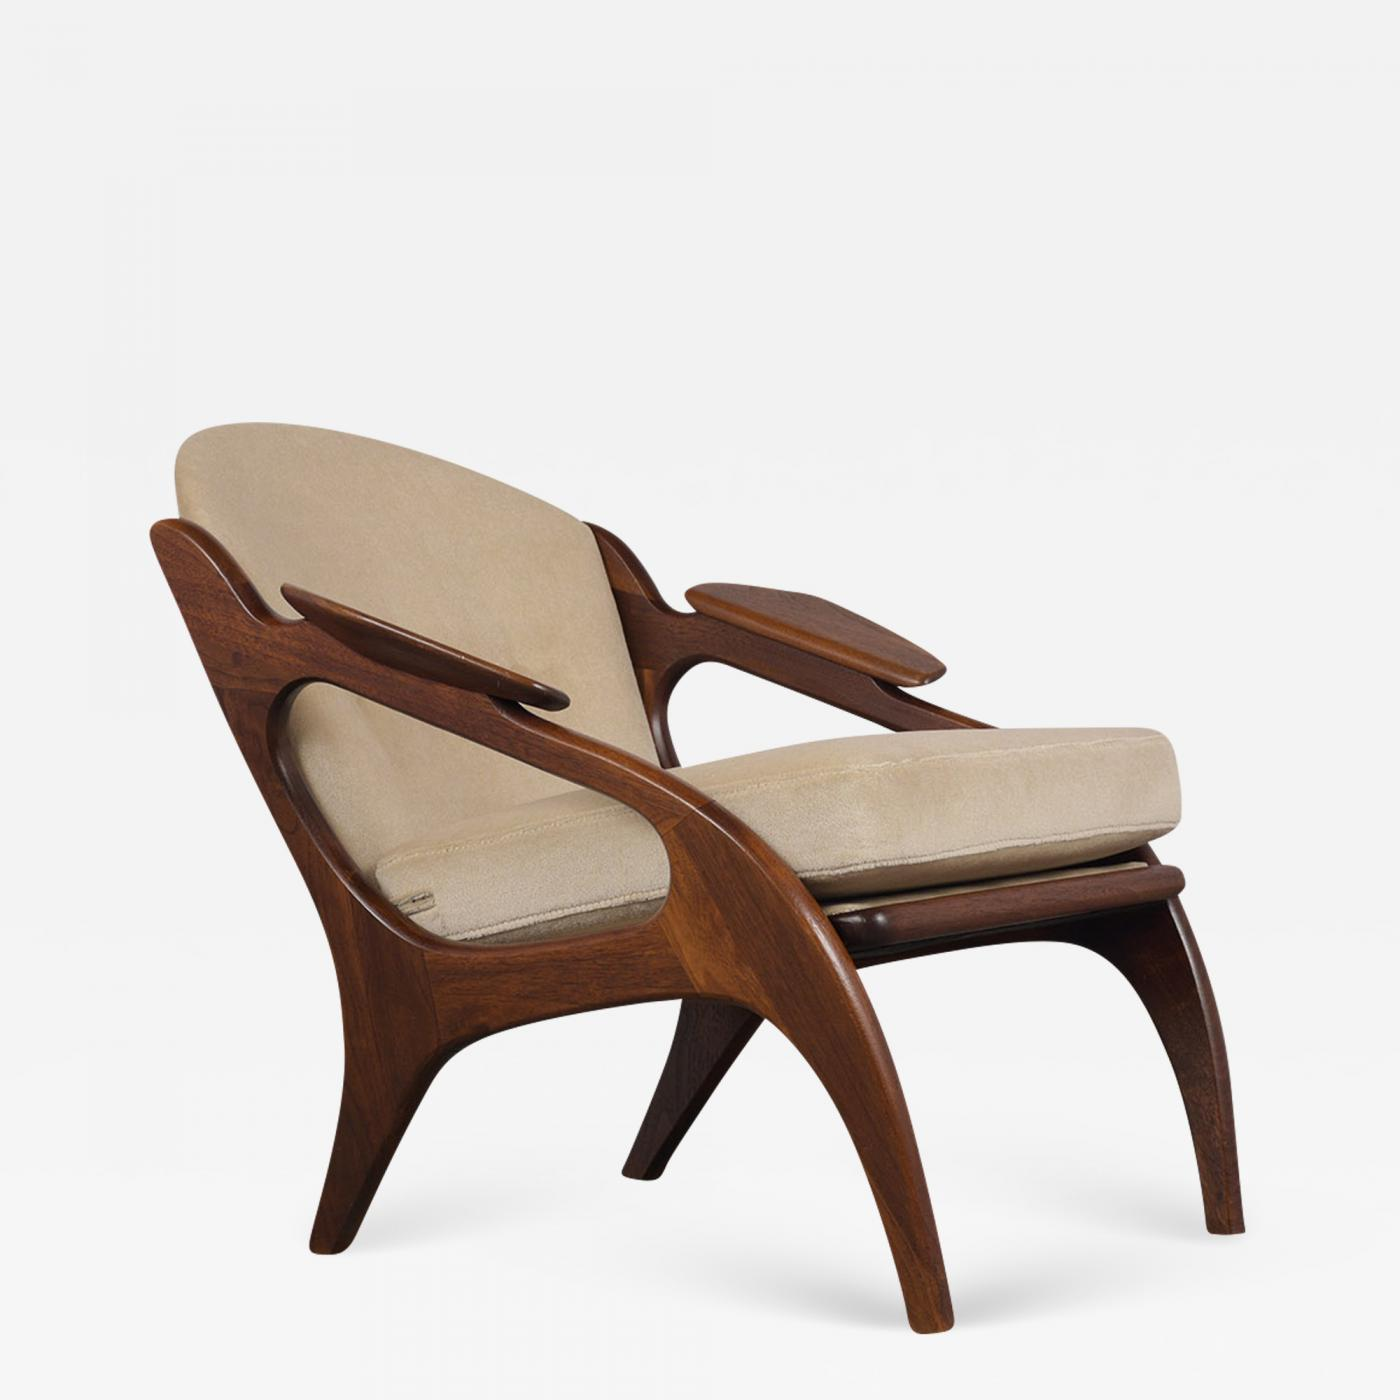 Astounding Adrian Pearsall Fully Restored Adrian Pearsall Craft Paddle Single Lounge Chair Caraccident5 Cool Chair Designs And Ideas Caraccident5Info